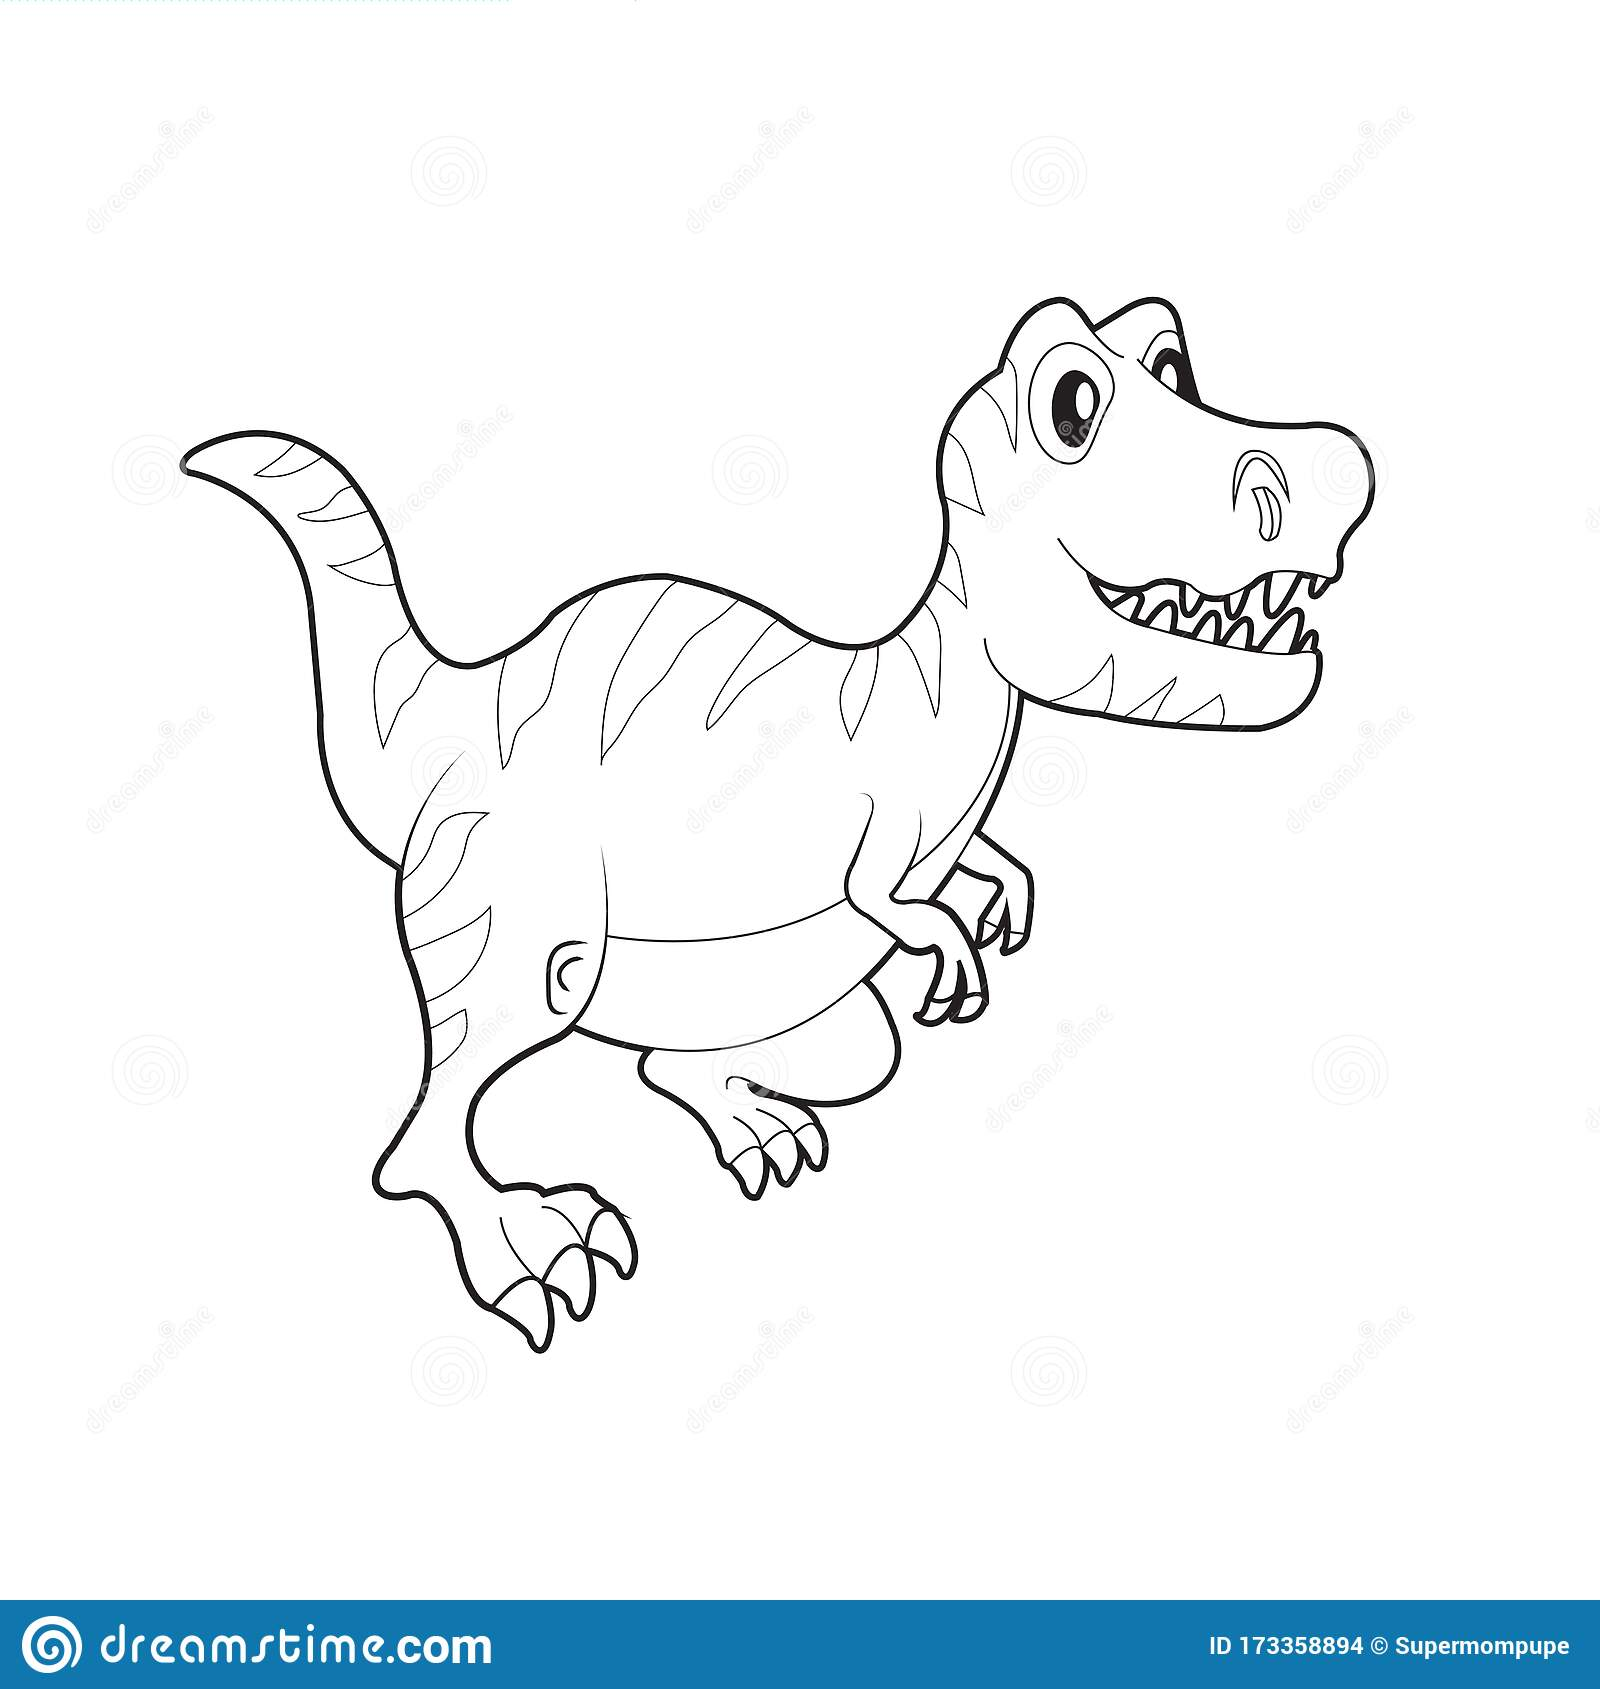 dinosaur colouring cute coloring stock vector illustration of comic dino for kids fashion coloring pages Coloring Page Cute